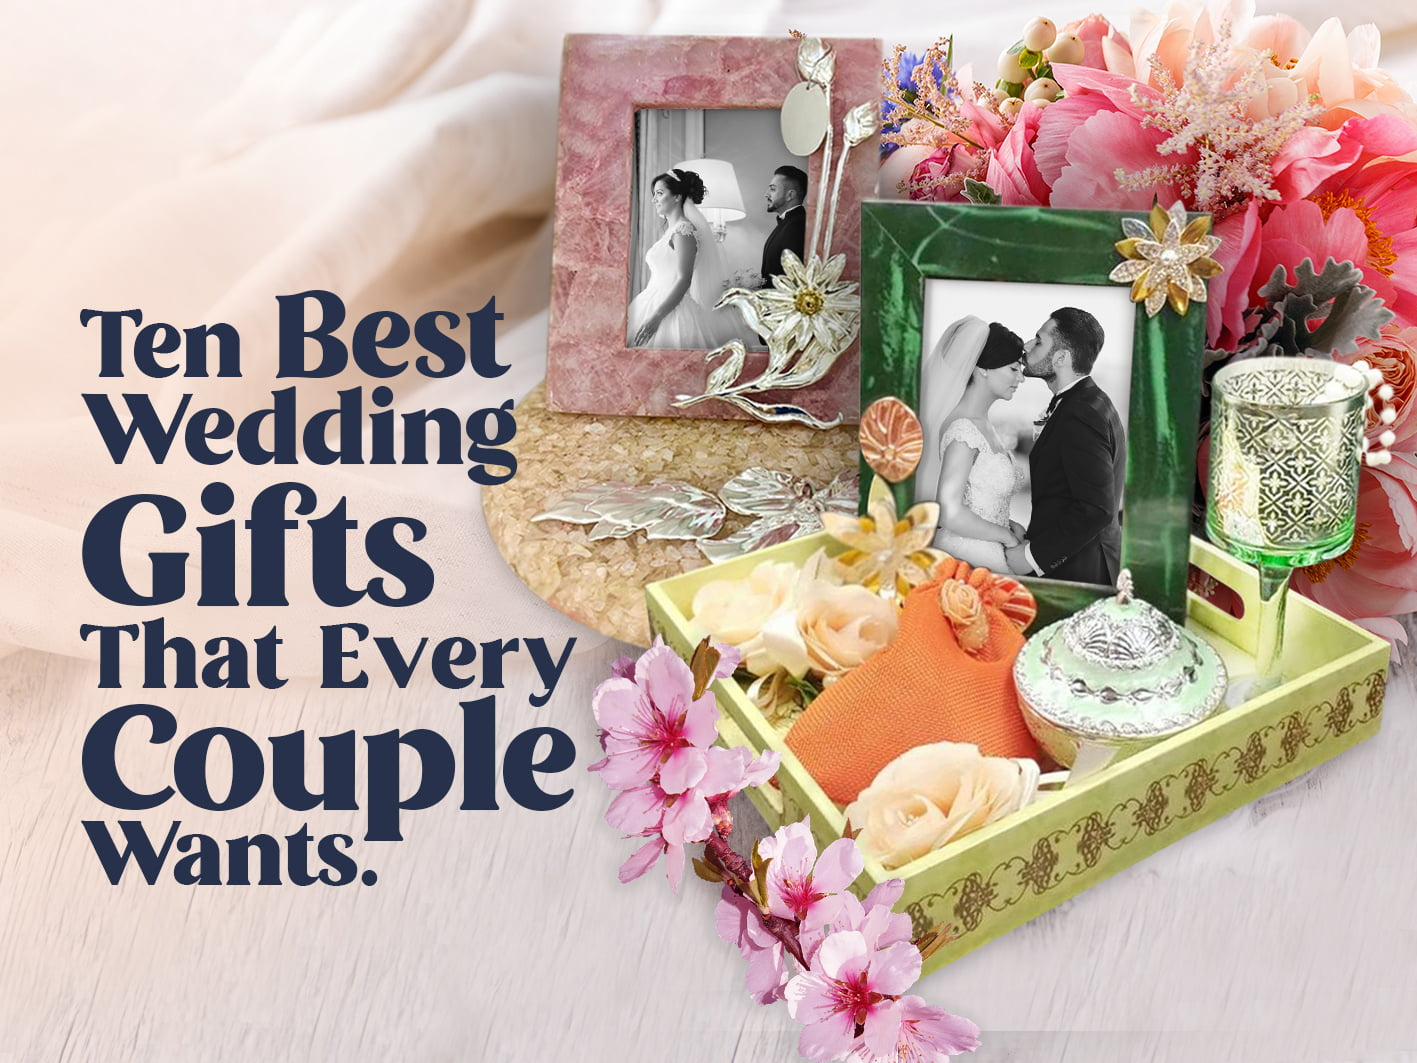 Ten Best Wedding Gifts That Every Couple Wants